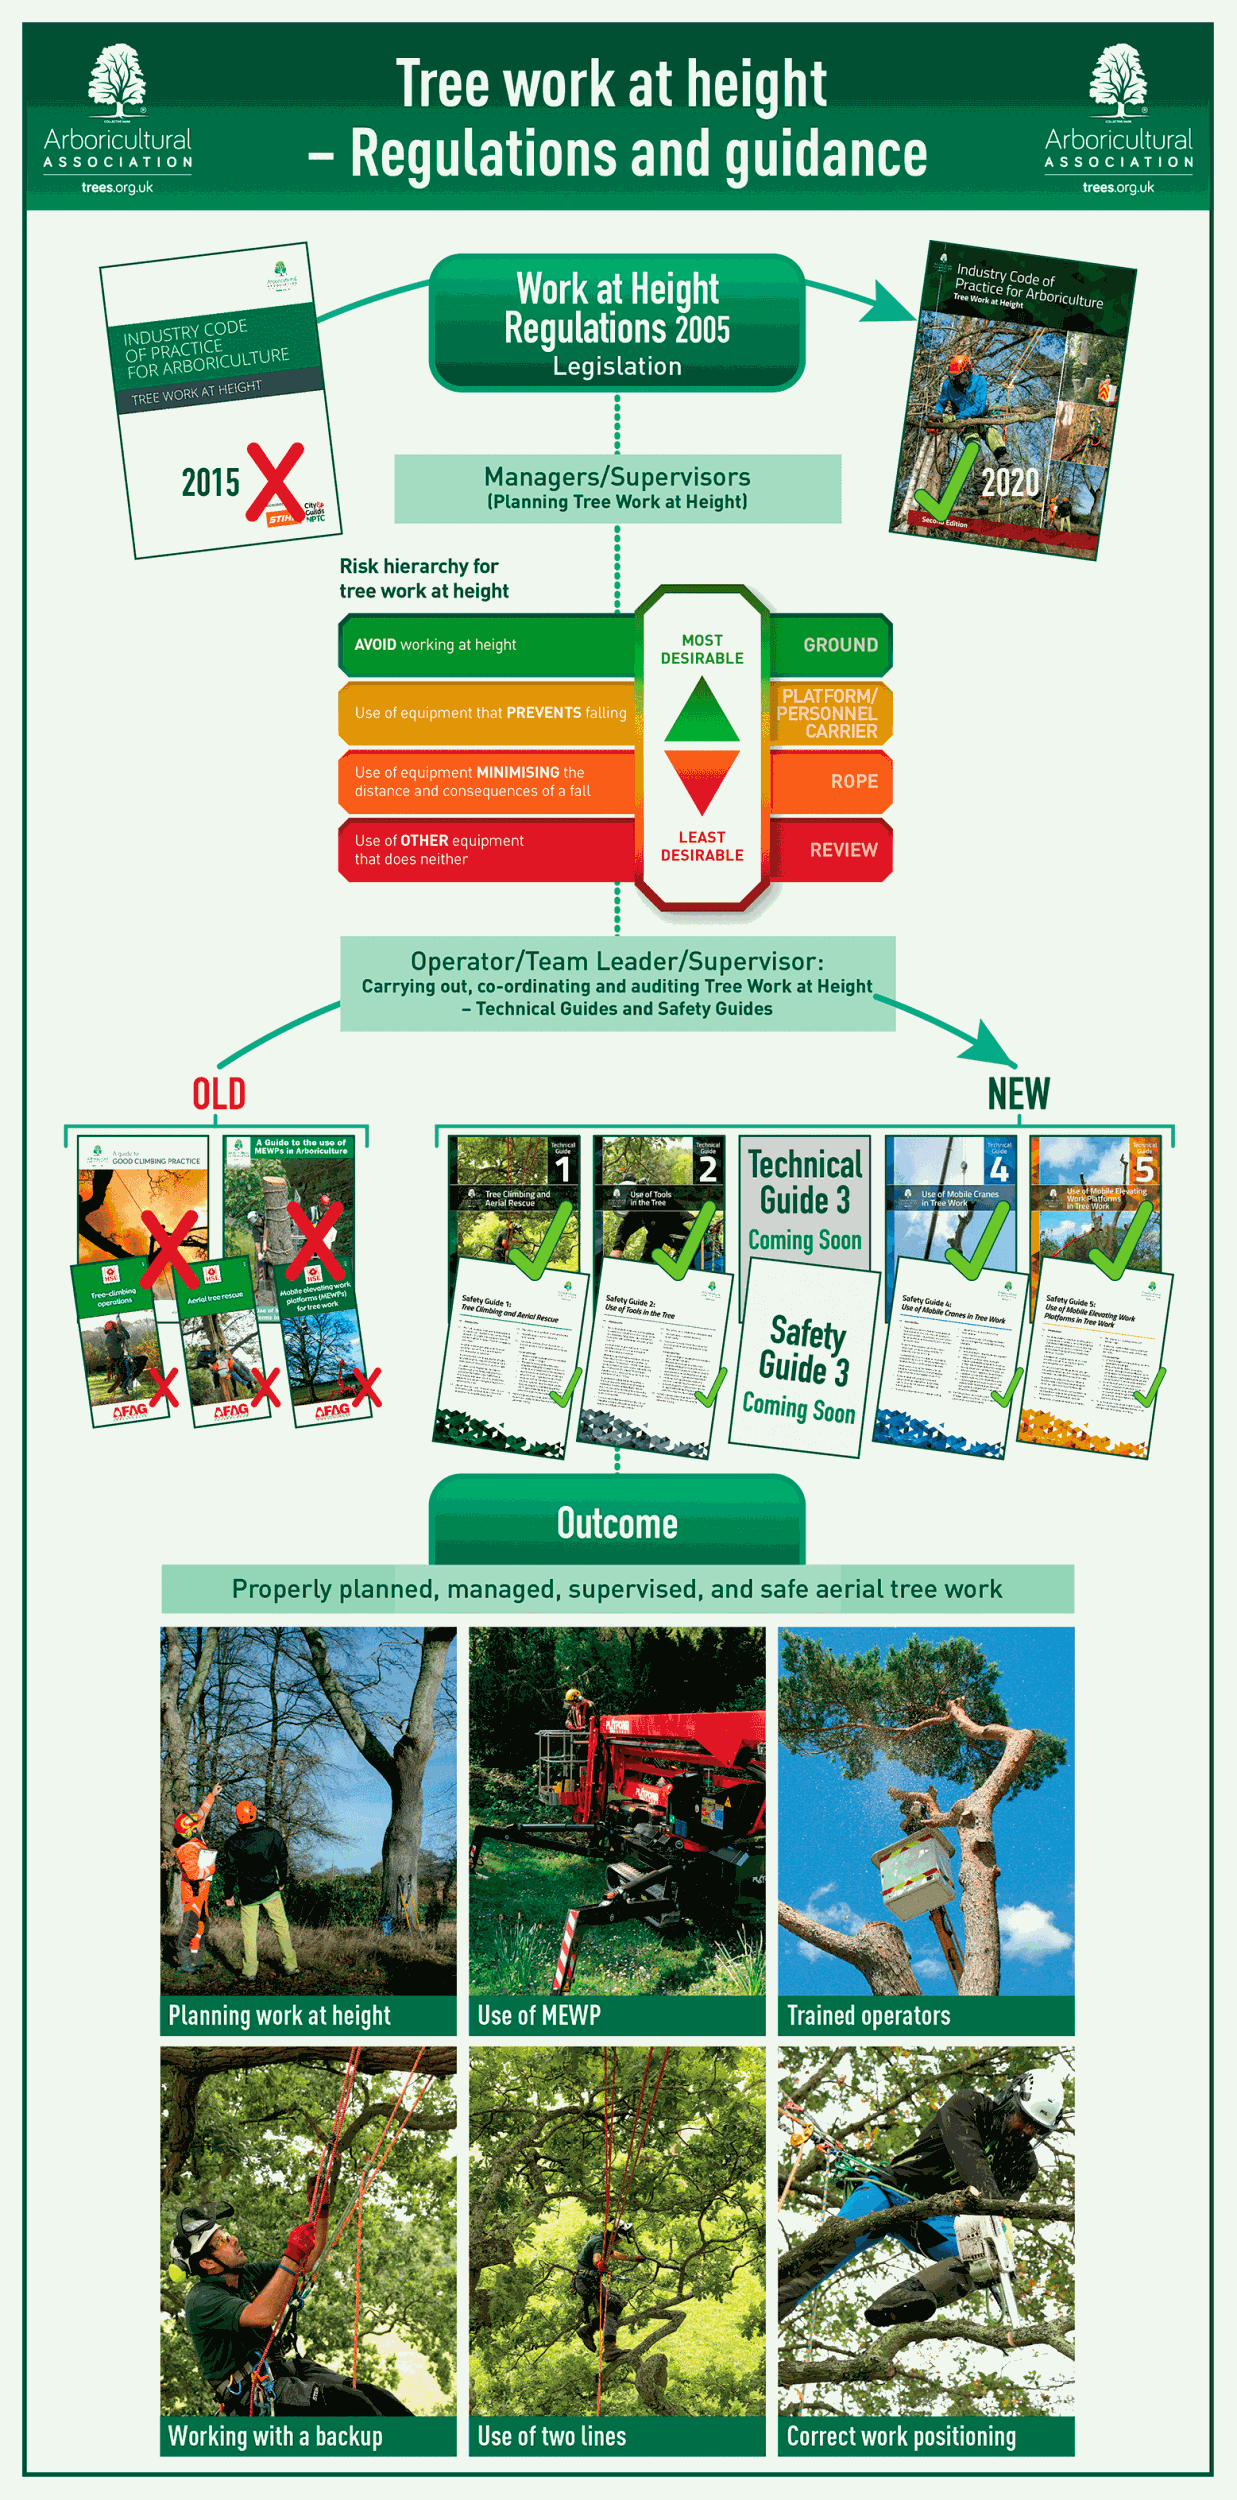 Tree work at height – Regulations and guidance